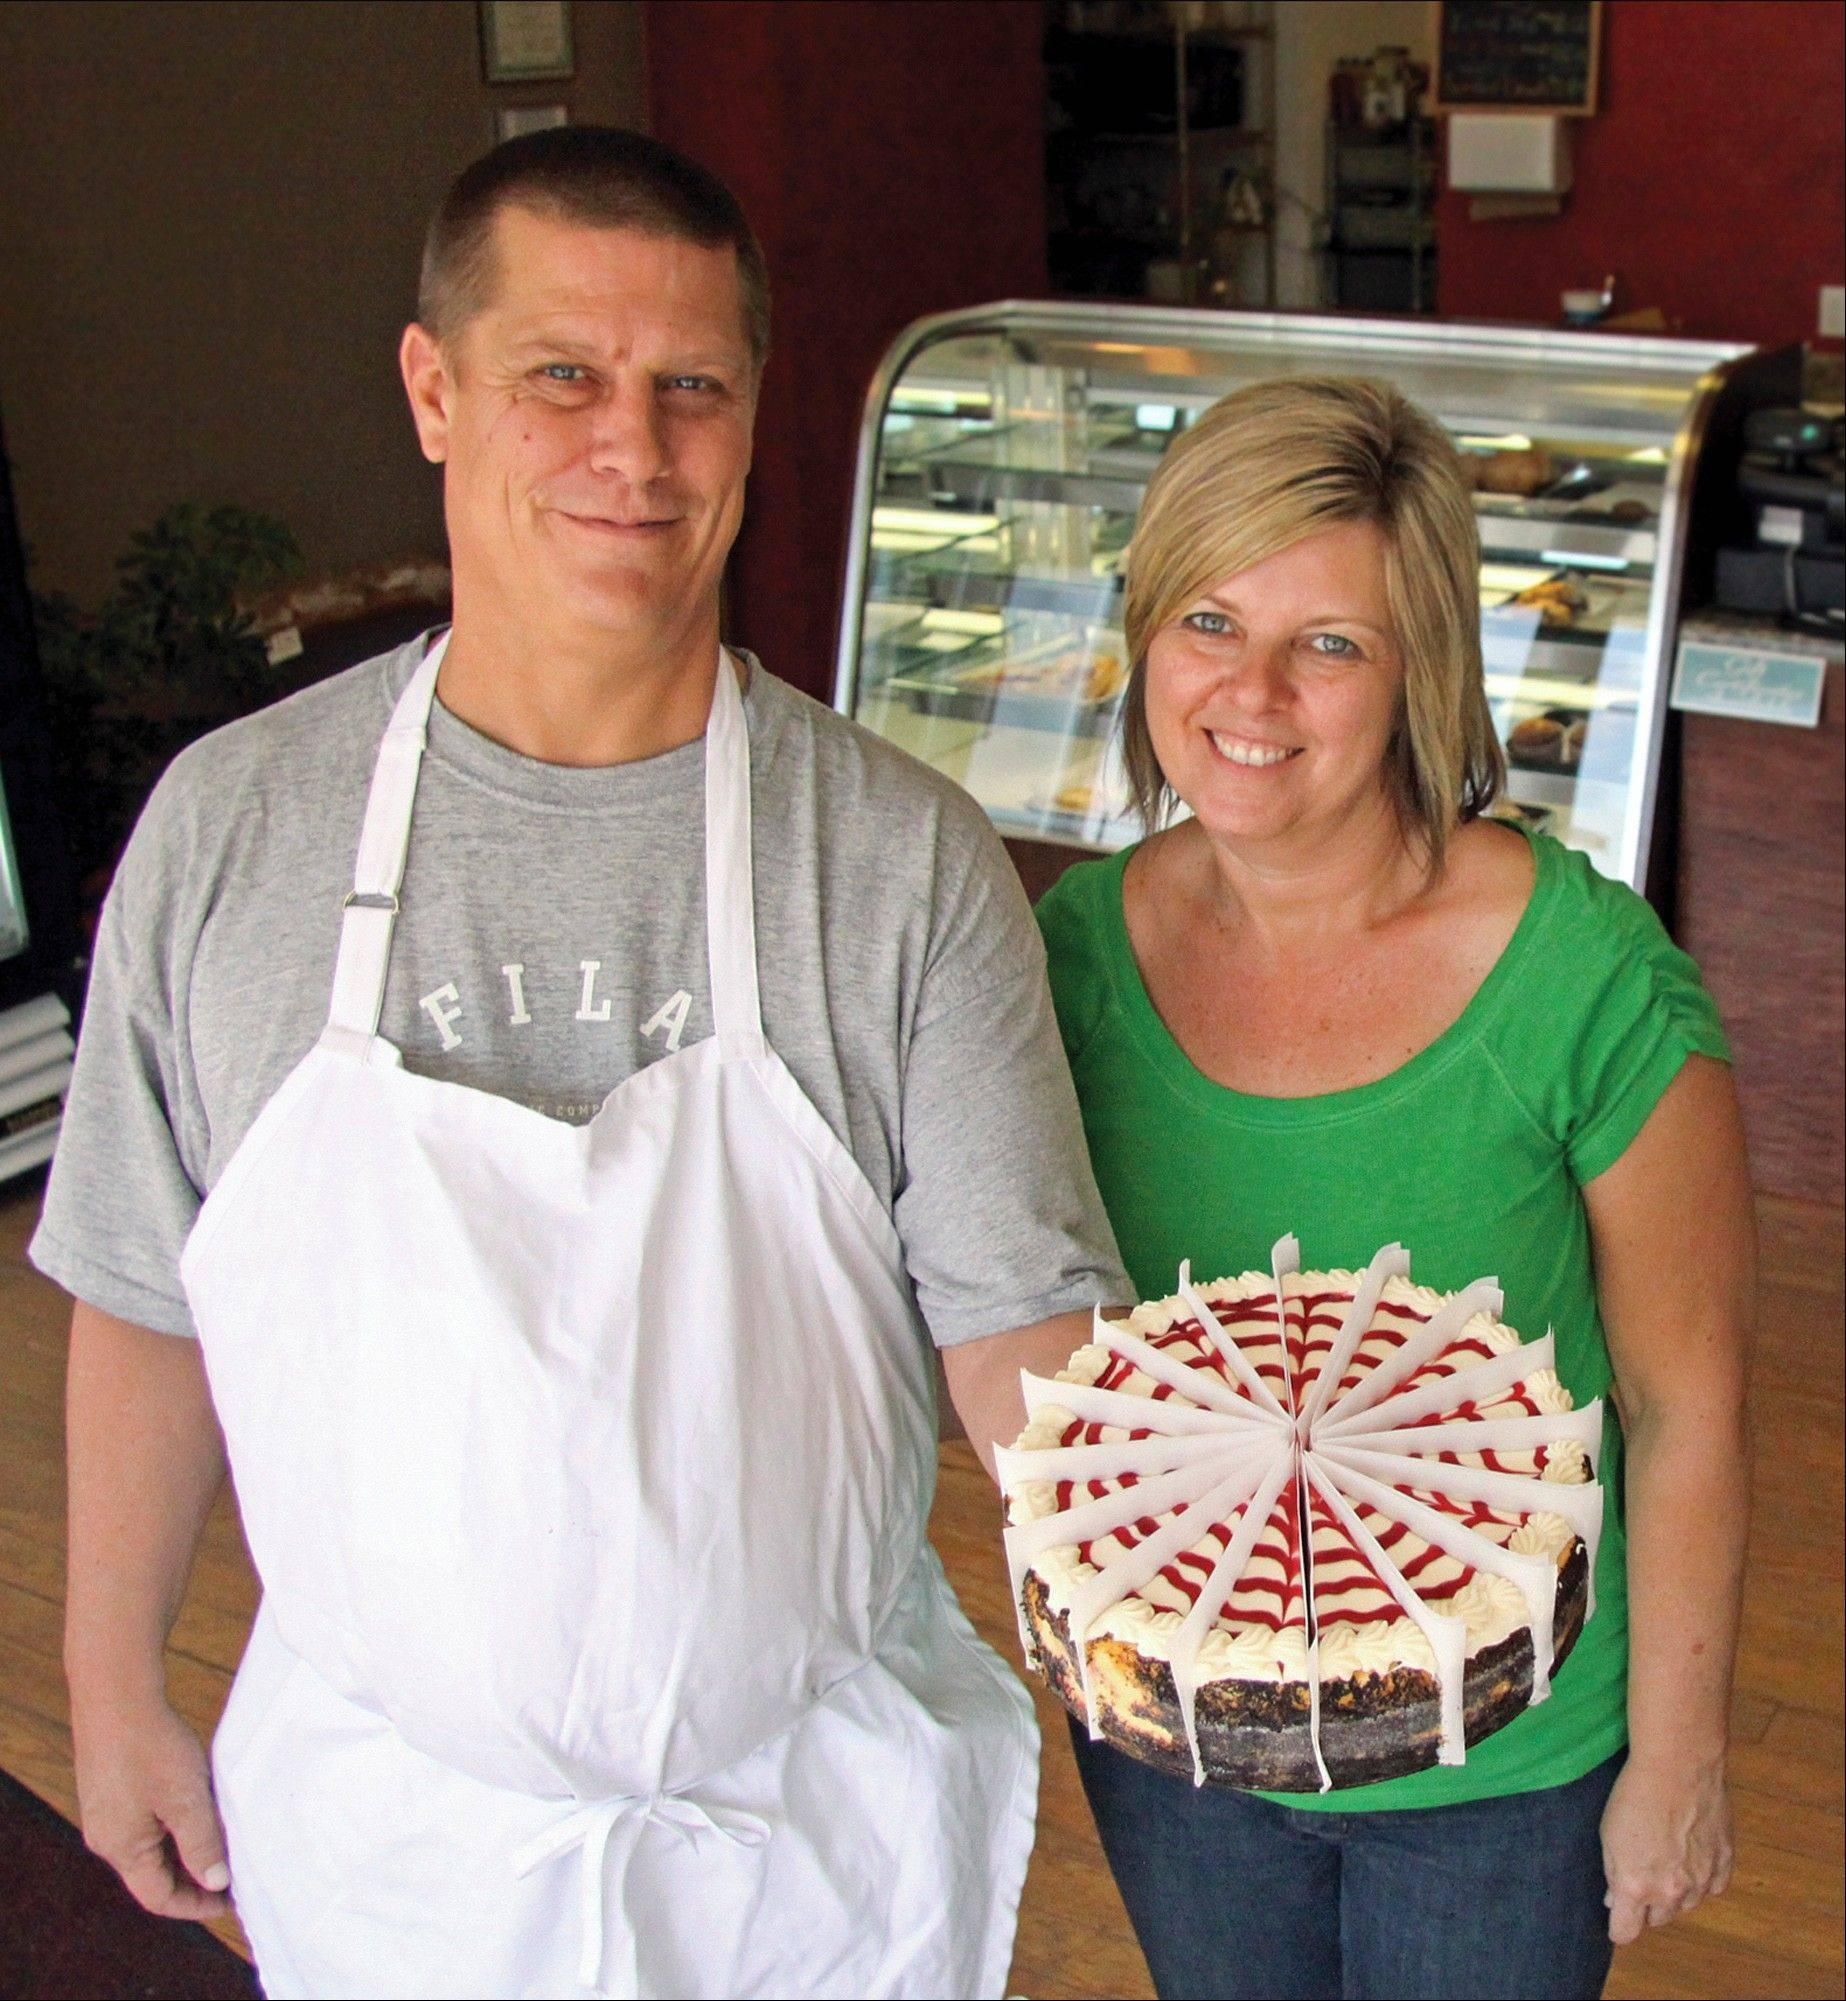 Dee and Tom Dannenberg spent the last seven years building a cheesecake business and developing other pastry recipes in preparation for the June 30 opening their own bakery and retirement business.